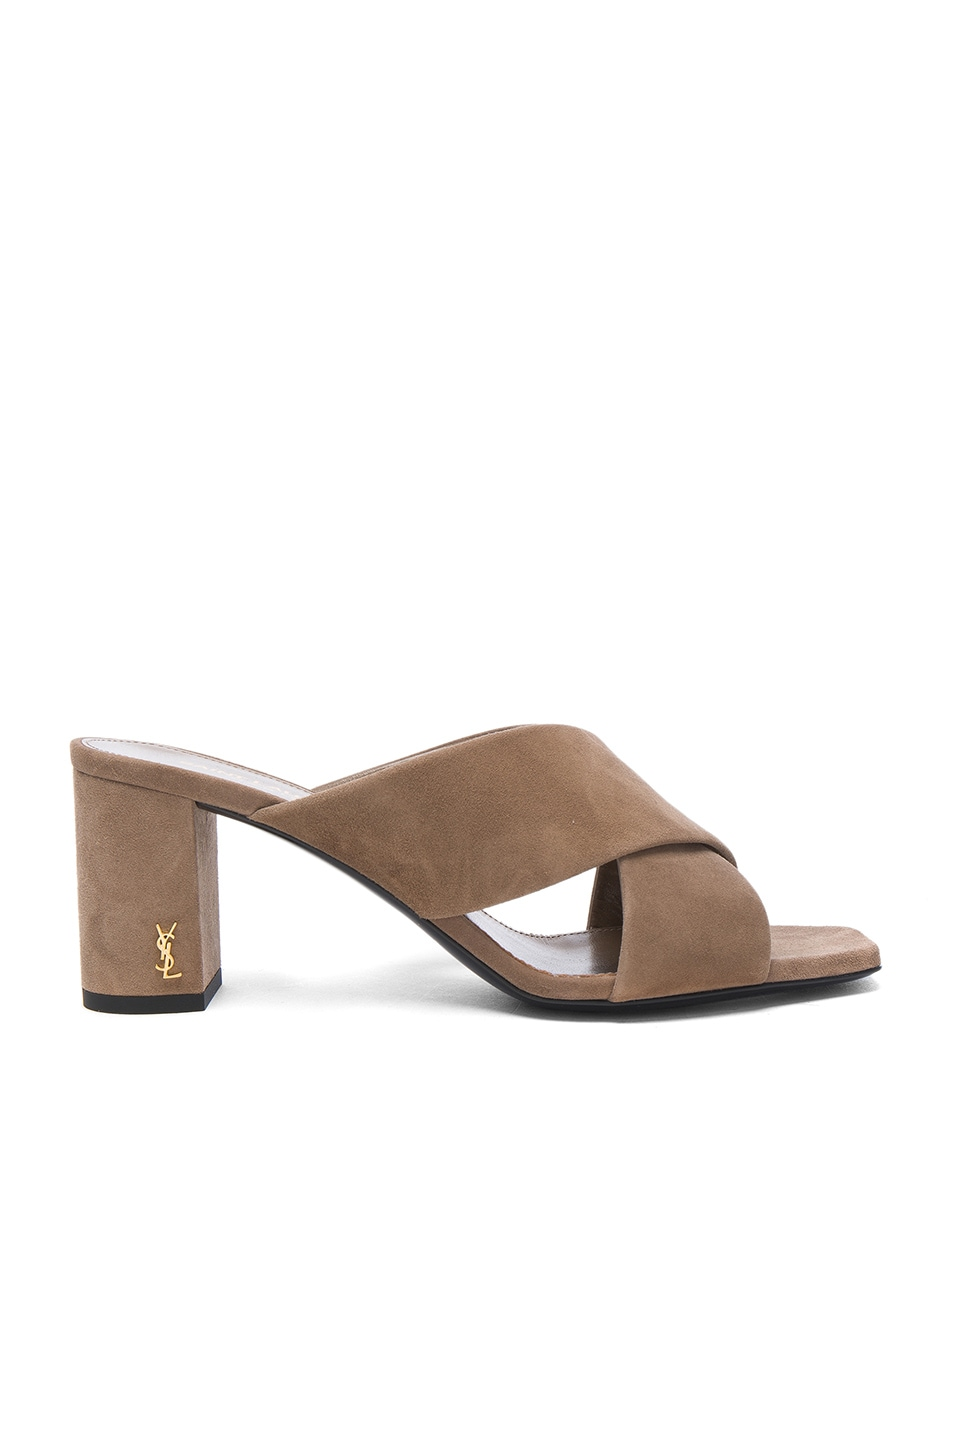 Image 1 of Saint Laurent Suede Loulou Mules in Taupe